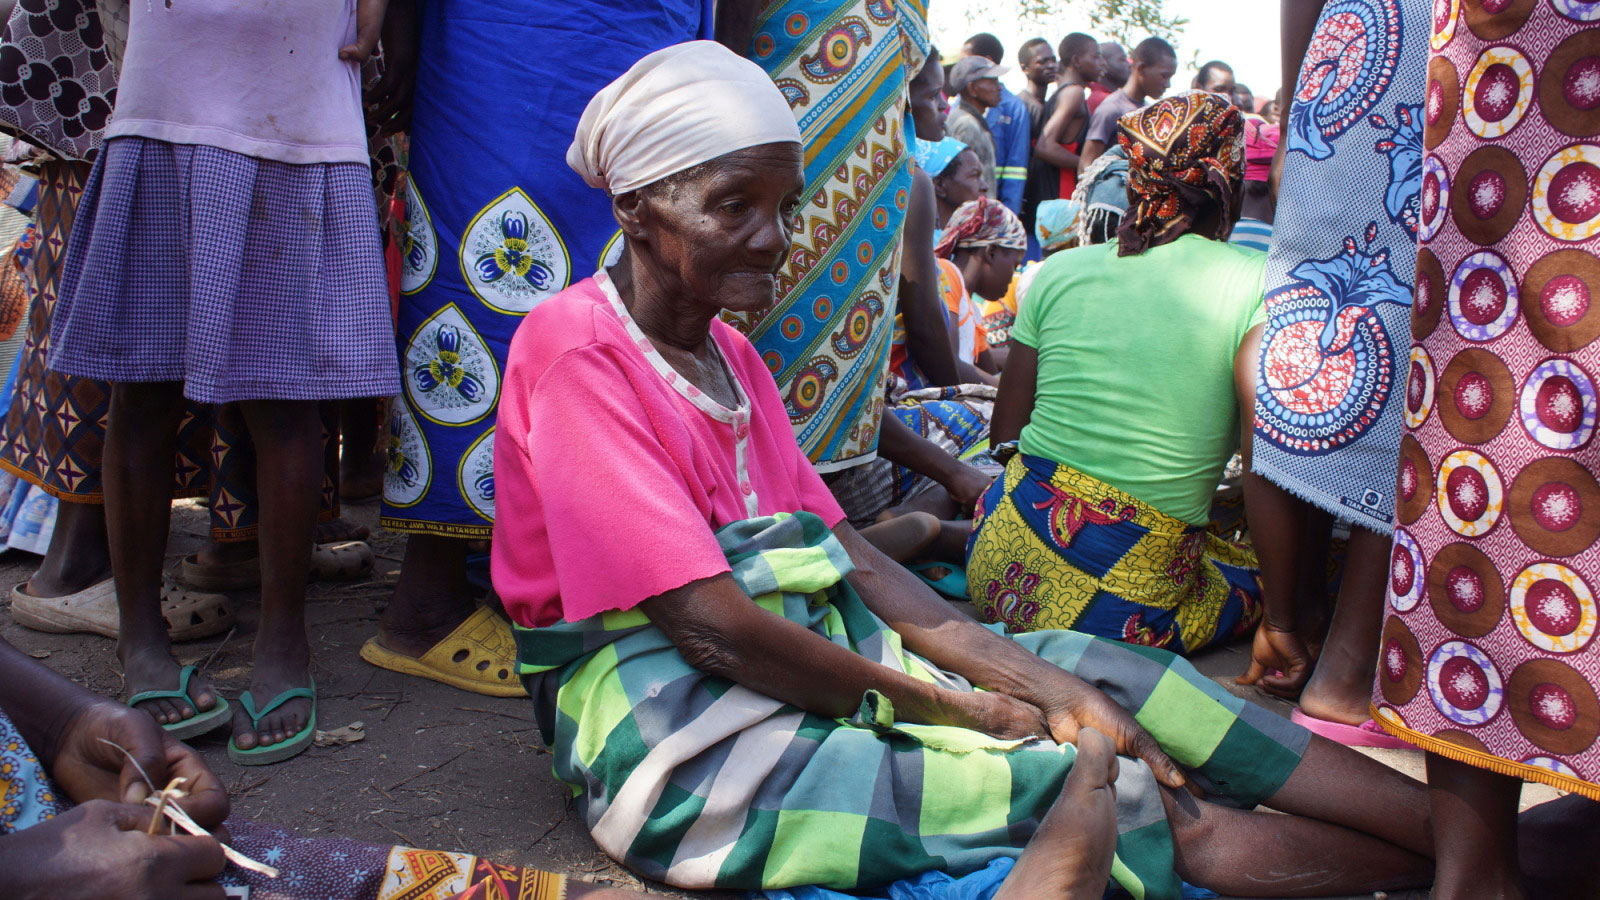 An-older-woman-sits-down-after-getting-tired-standing-in-a-line-for-humanitarian-aid-in-Mozambique